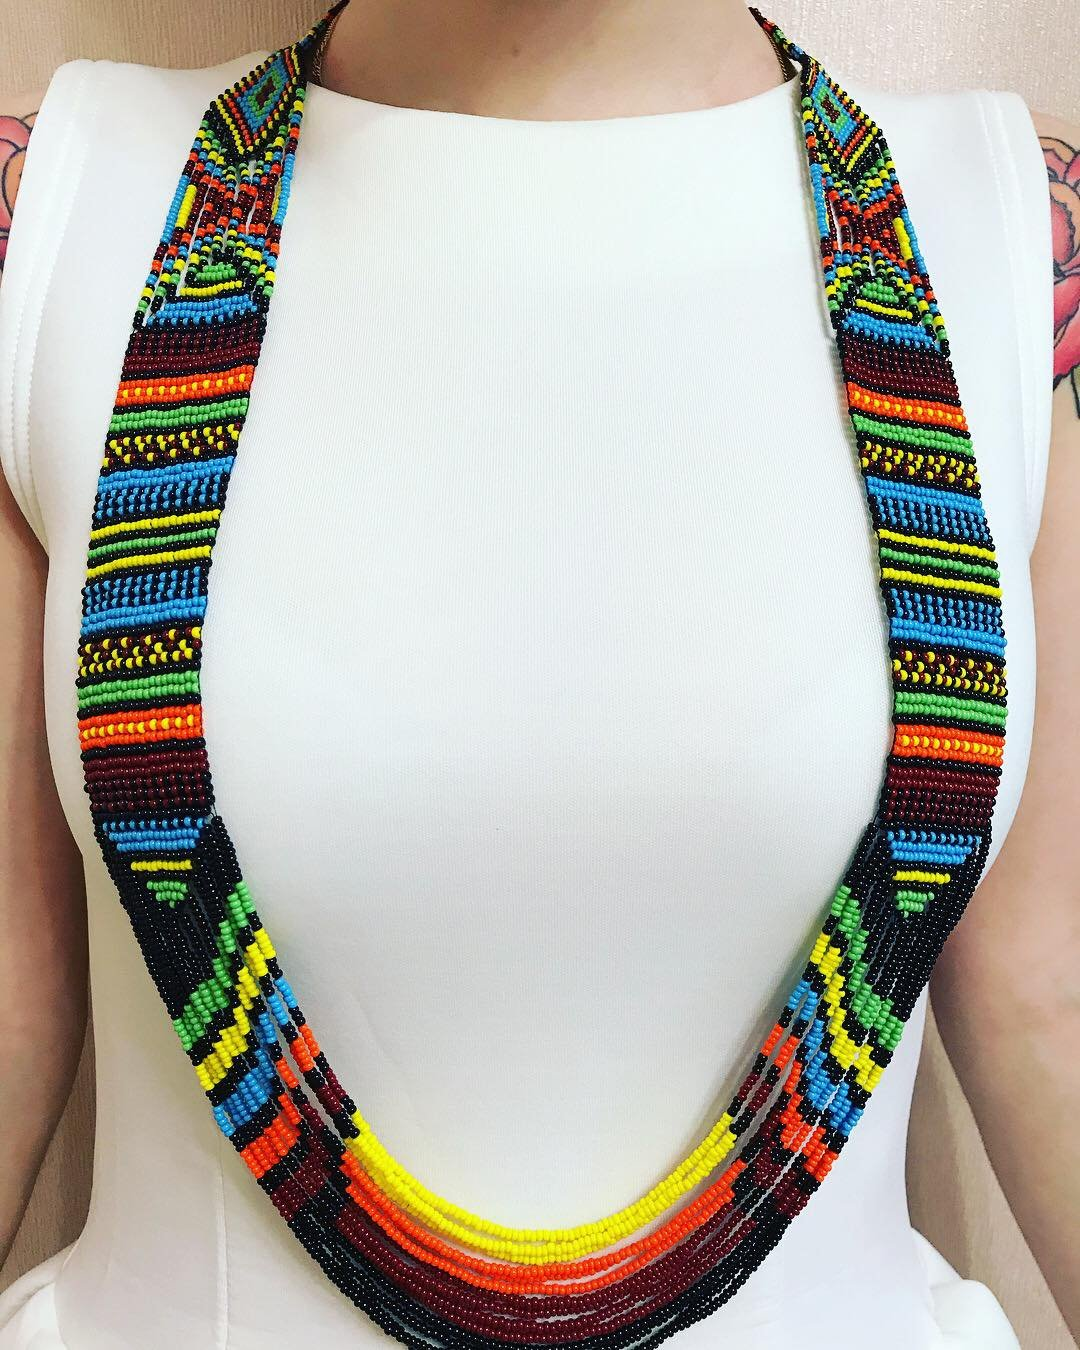 Amazon Com Mexican Bead Loom Necklace Native America Style Bead Necklace Native American Style Beaded Jewelry Large Boho Necklace Colorful Jewelry Handmade